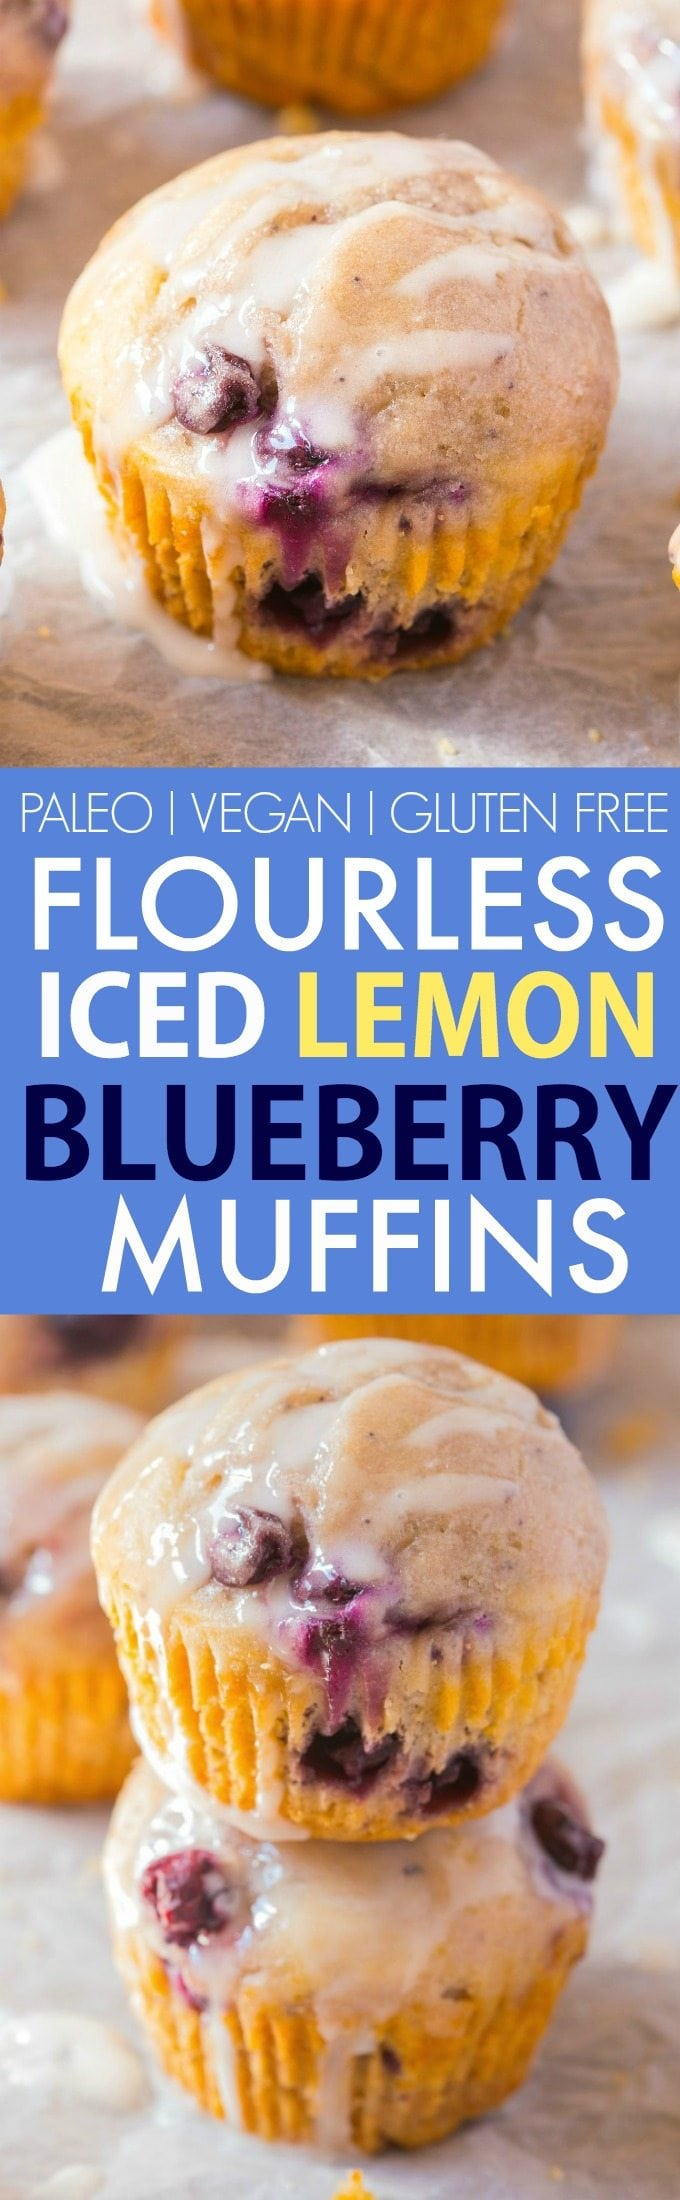 Healthy Flourless Lemon Blueberry Muffins (V, GF, Paleo)- Oil-free and sugar-free muffins which are so light, fluffy and filling, you'd never know! Freezer friendly, protein-packed and suitable for breakfast! {Vegan, gluten free, paleo recipe}- thebigmansworld.com